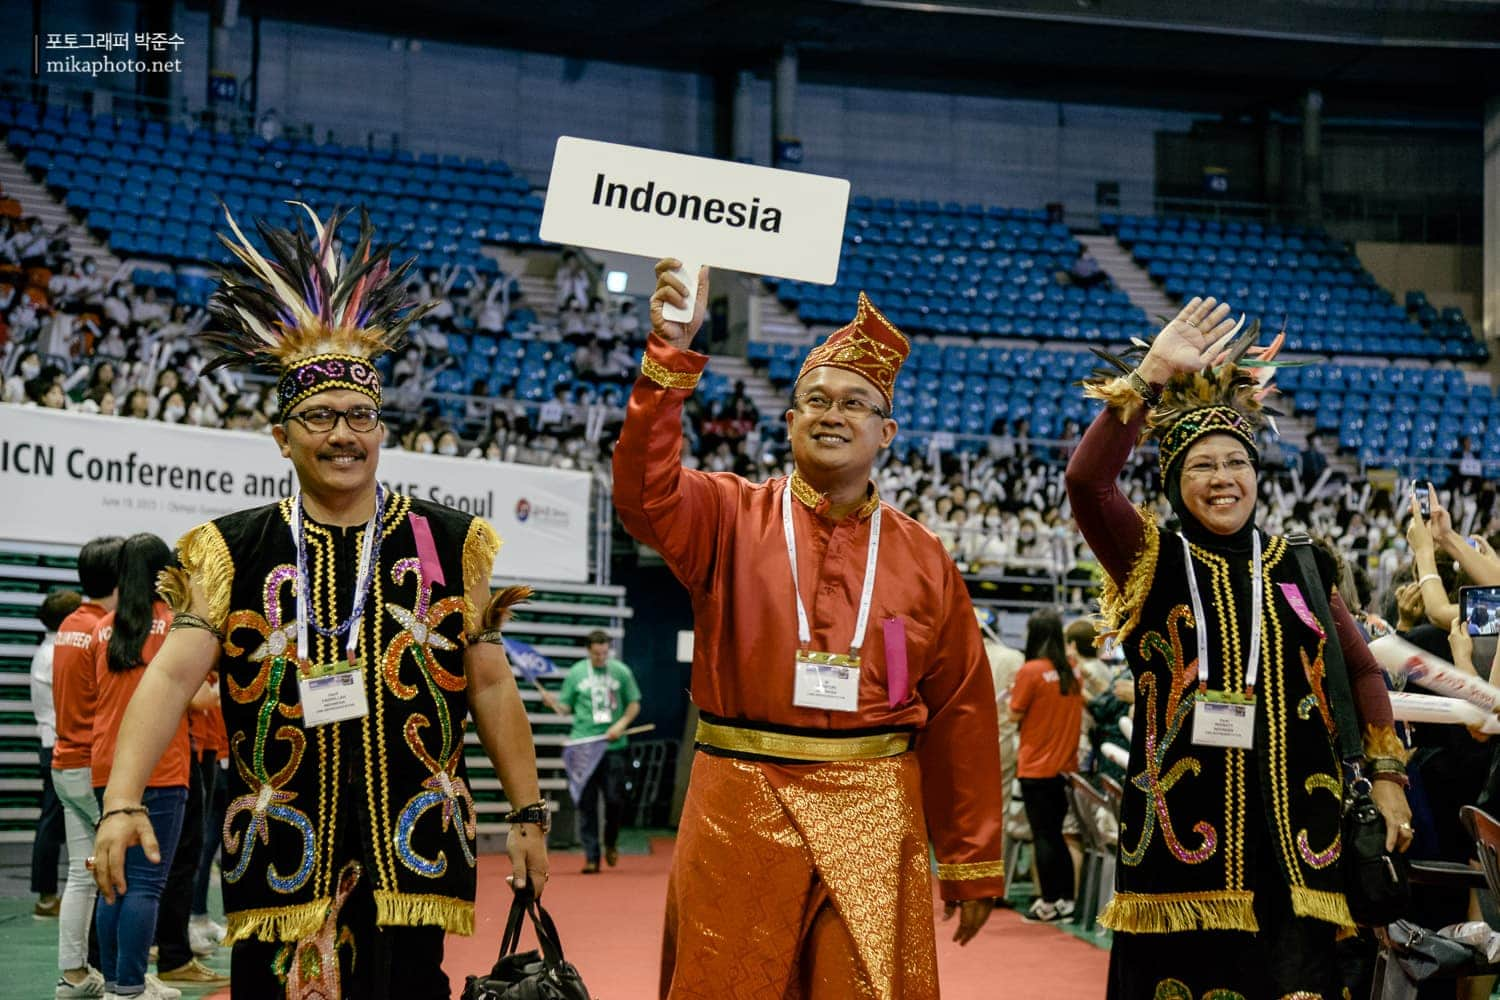 Delegate from Indonesia